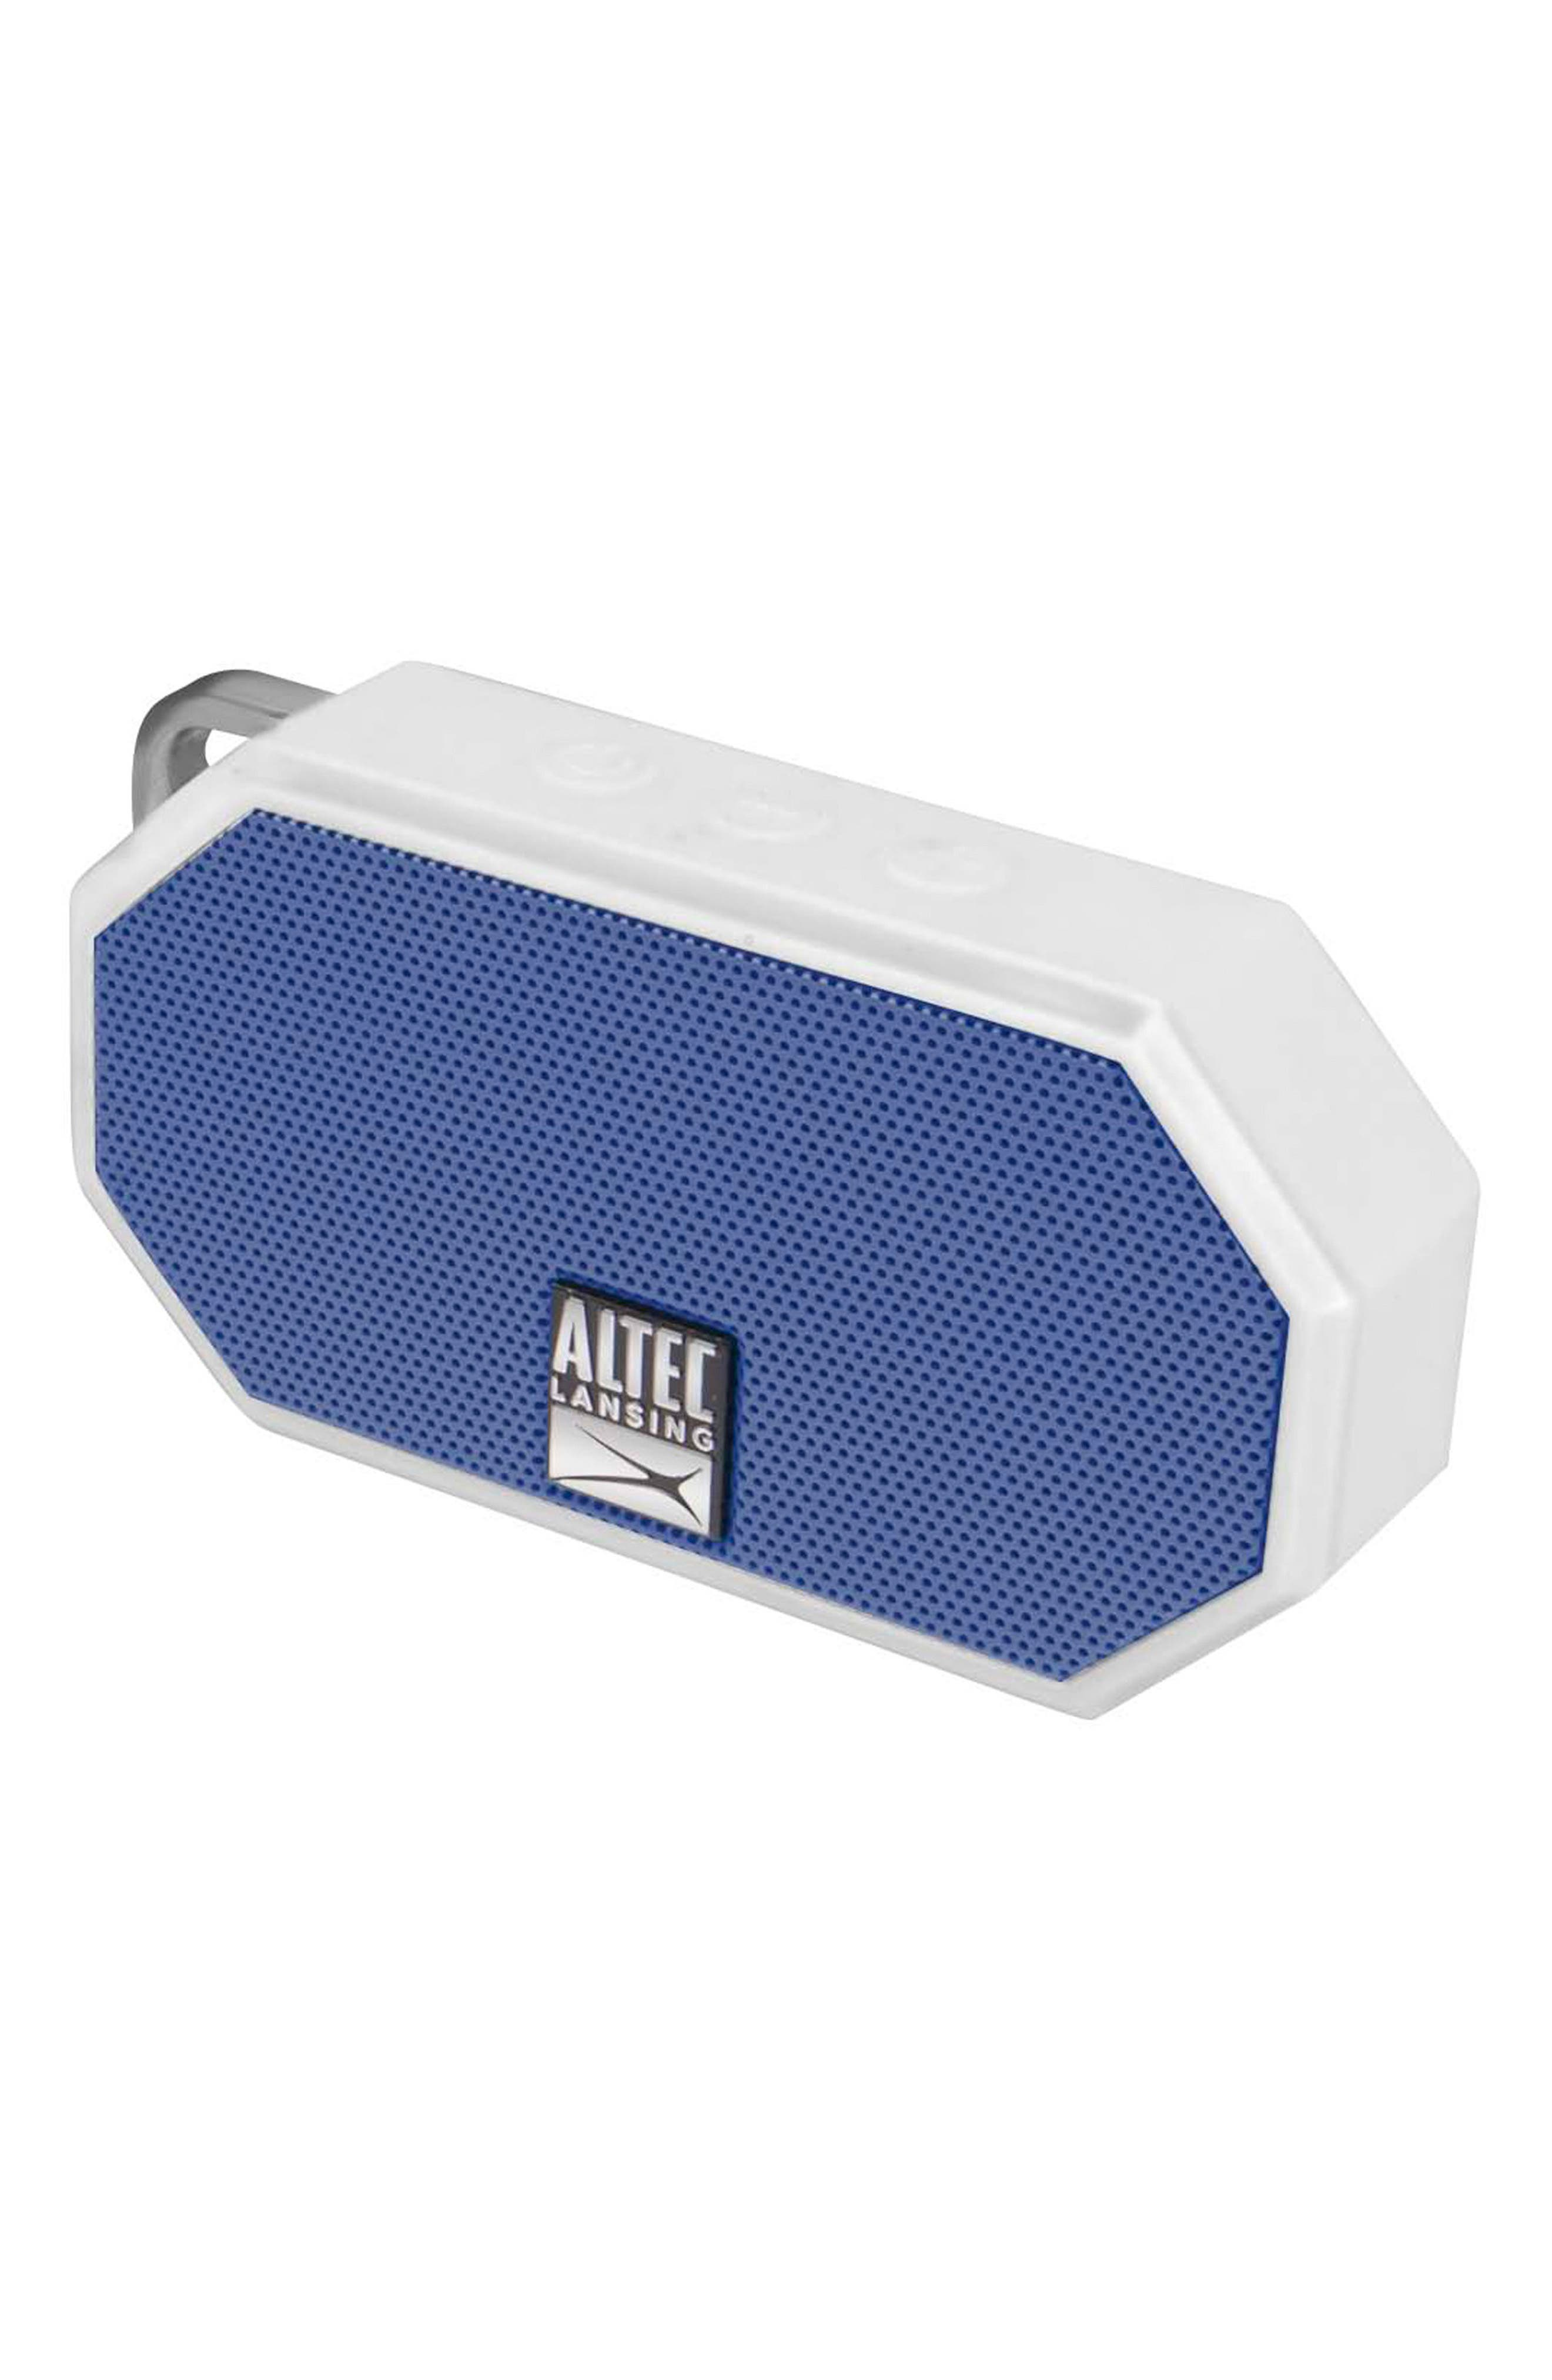 ALTEC LANSING,                             Mini H2O 3 Waterproof Compact Speaker,                             Alternate thumbnail 4, color,                             WHTE/ DEEP MID BLUE